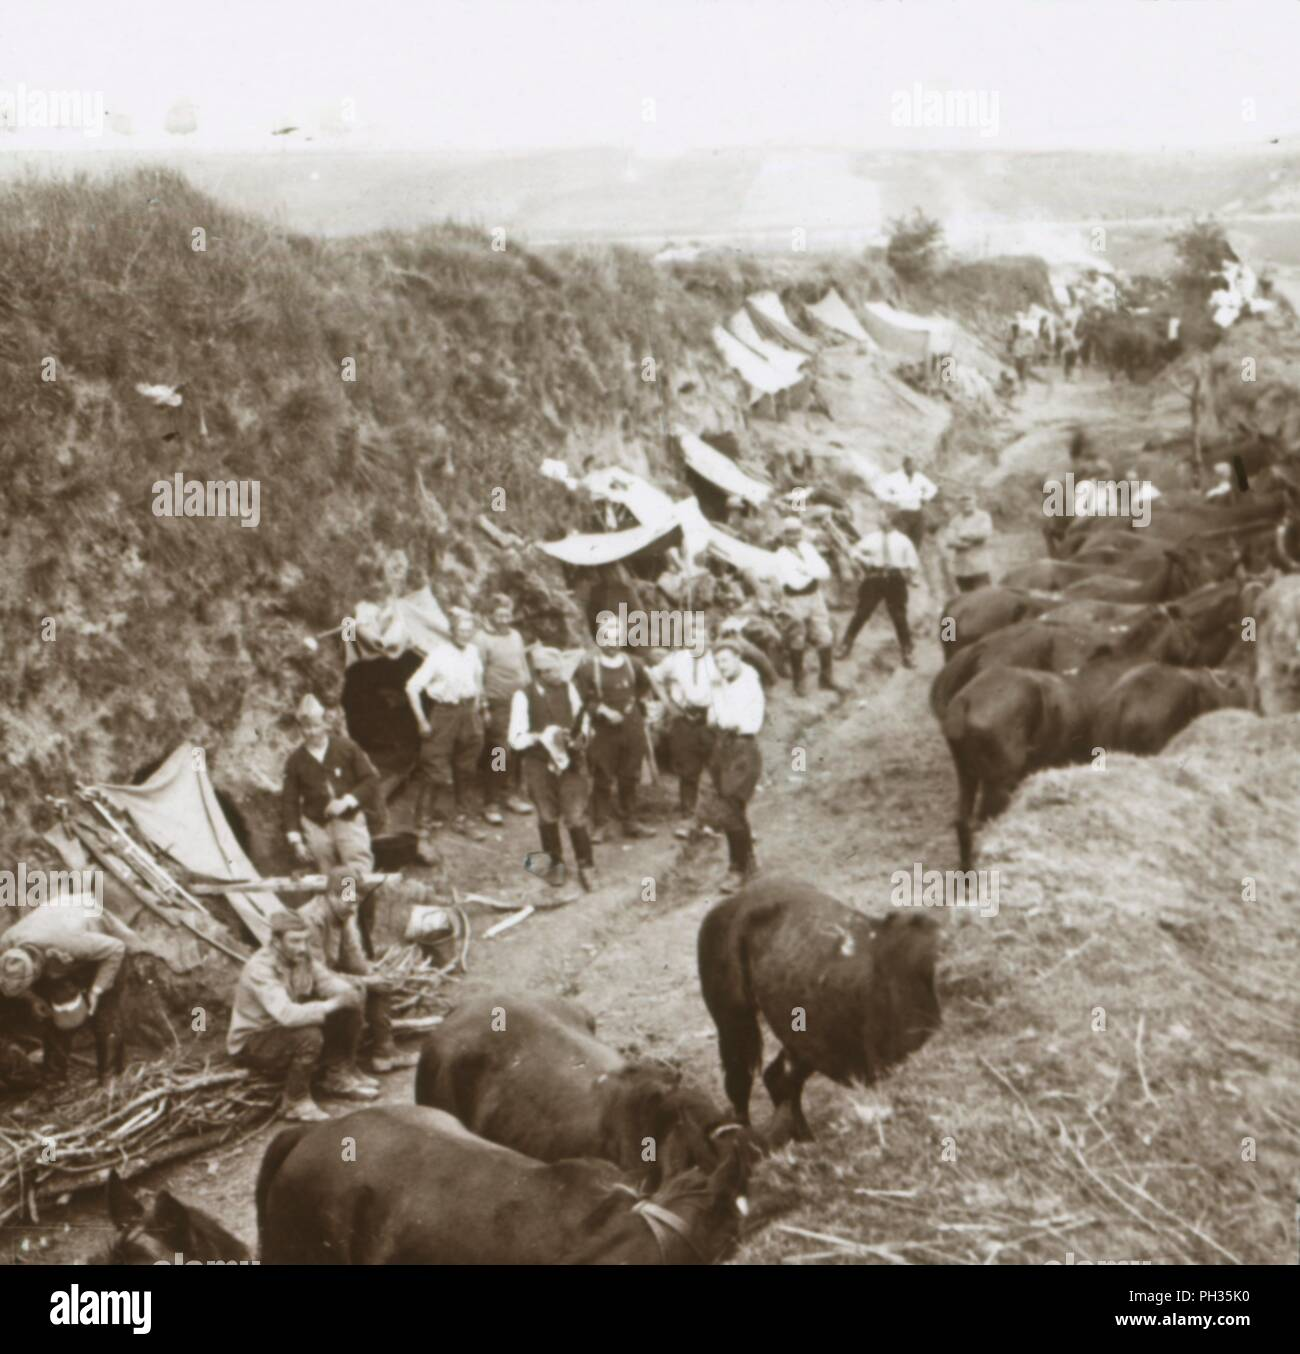 Cavalry, c1914-c1918. French soldiers with horses. Photograph from a series of glass plate stereoview images depicting scenes from World War I (1914-1918). - Stock Image